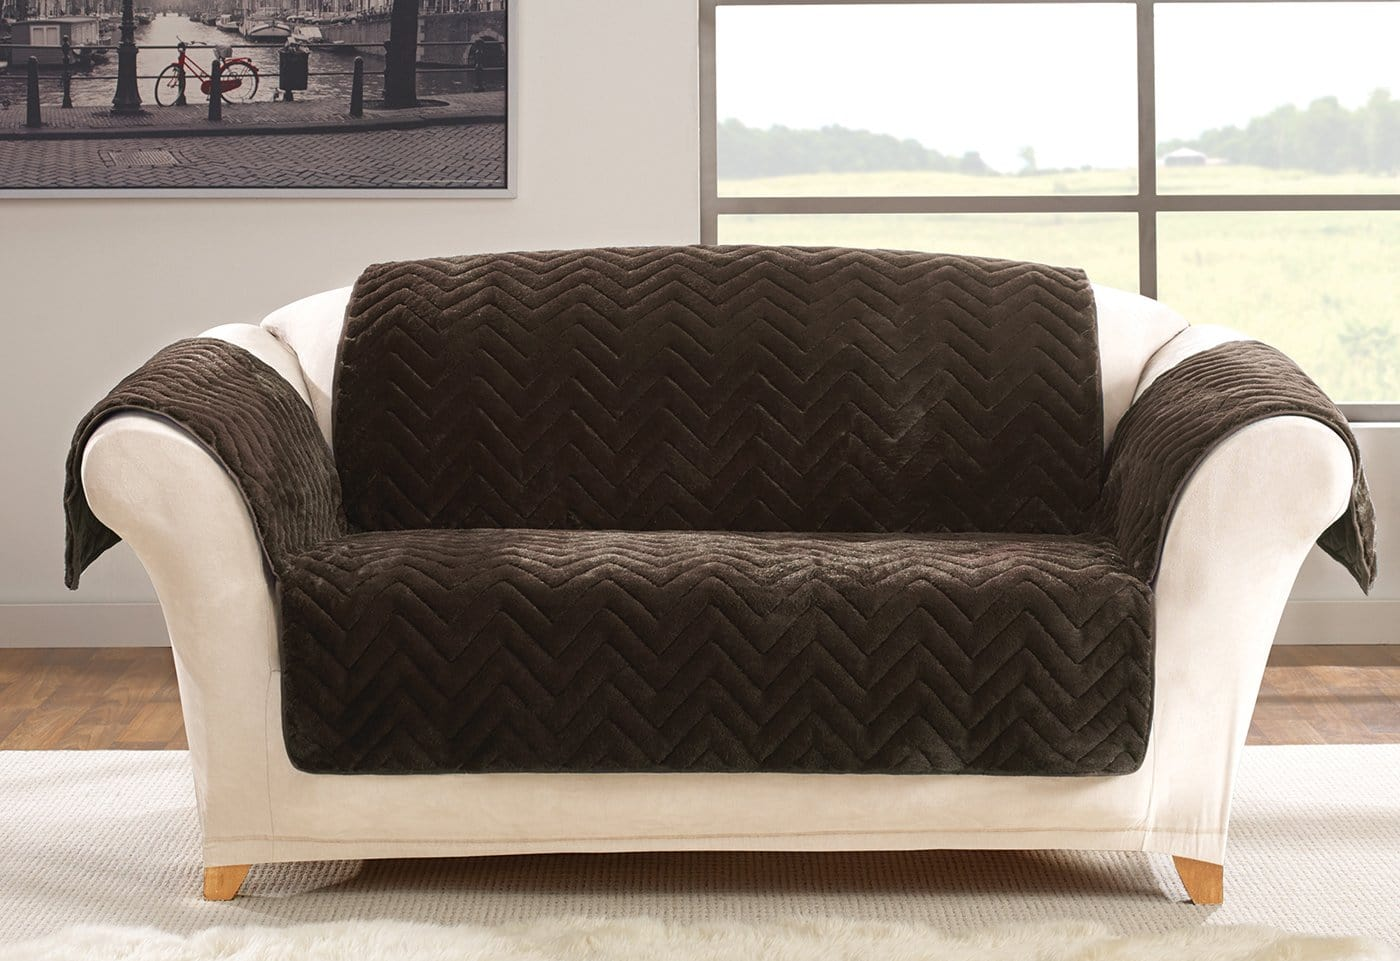 Faux Fur Chevron Loveseat Furniture Cover 100% Polyester Pet Furniture Cover Machine Washable - Loveseat / Chocolate